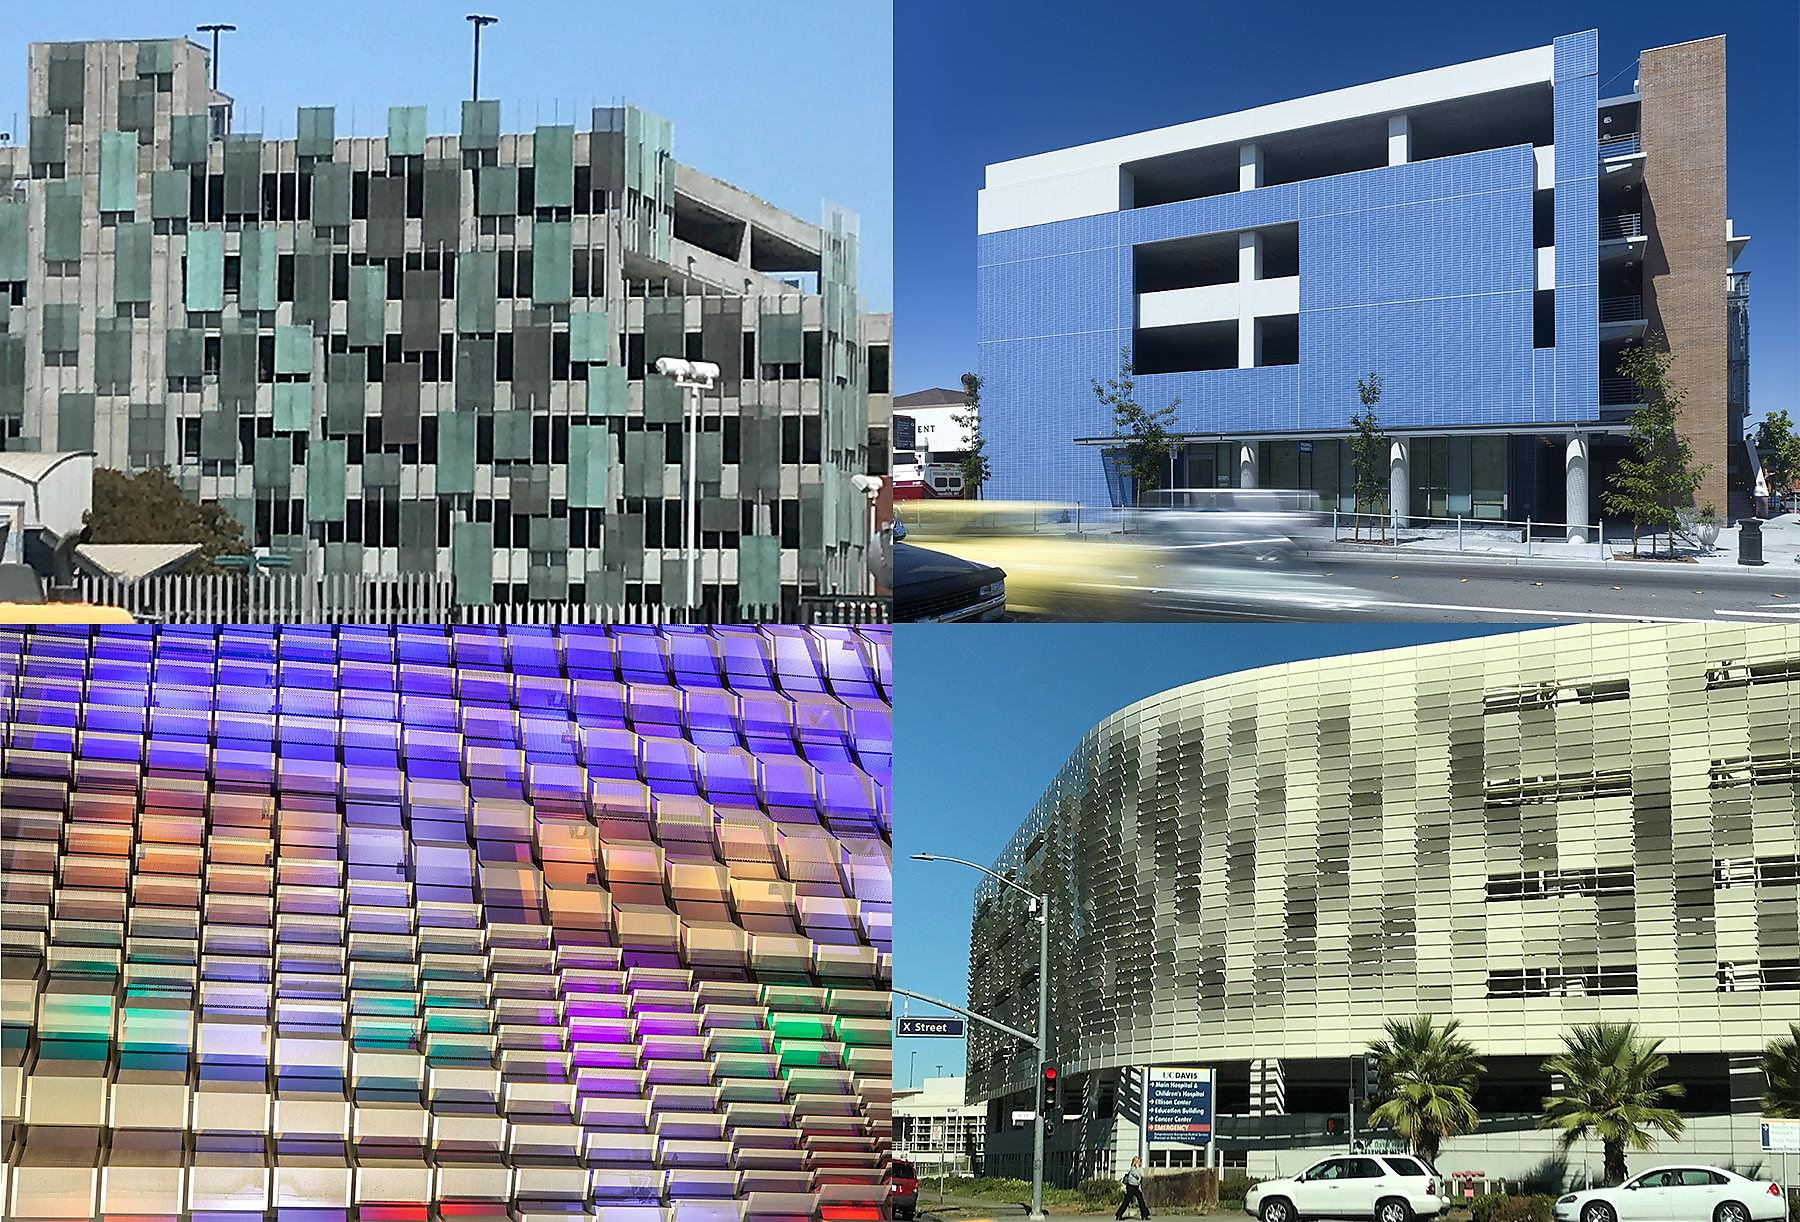 The architecture of parking garages, from ghastly to glorious